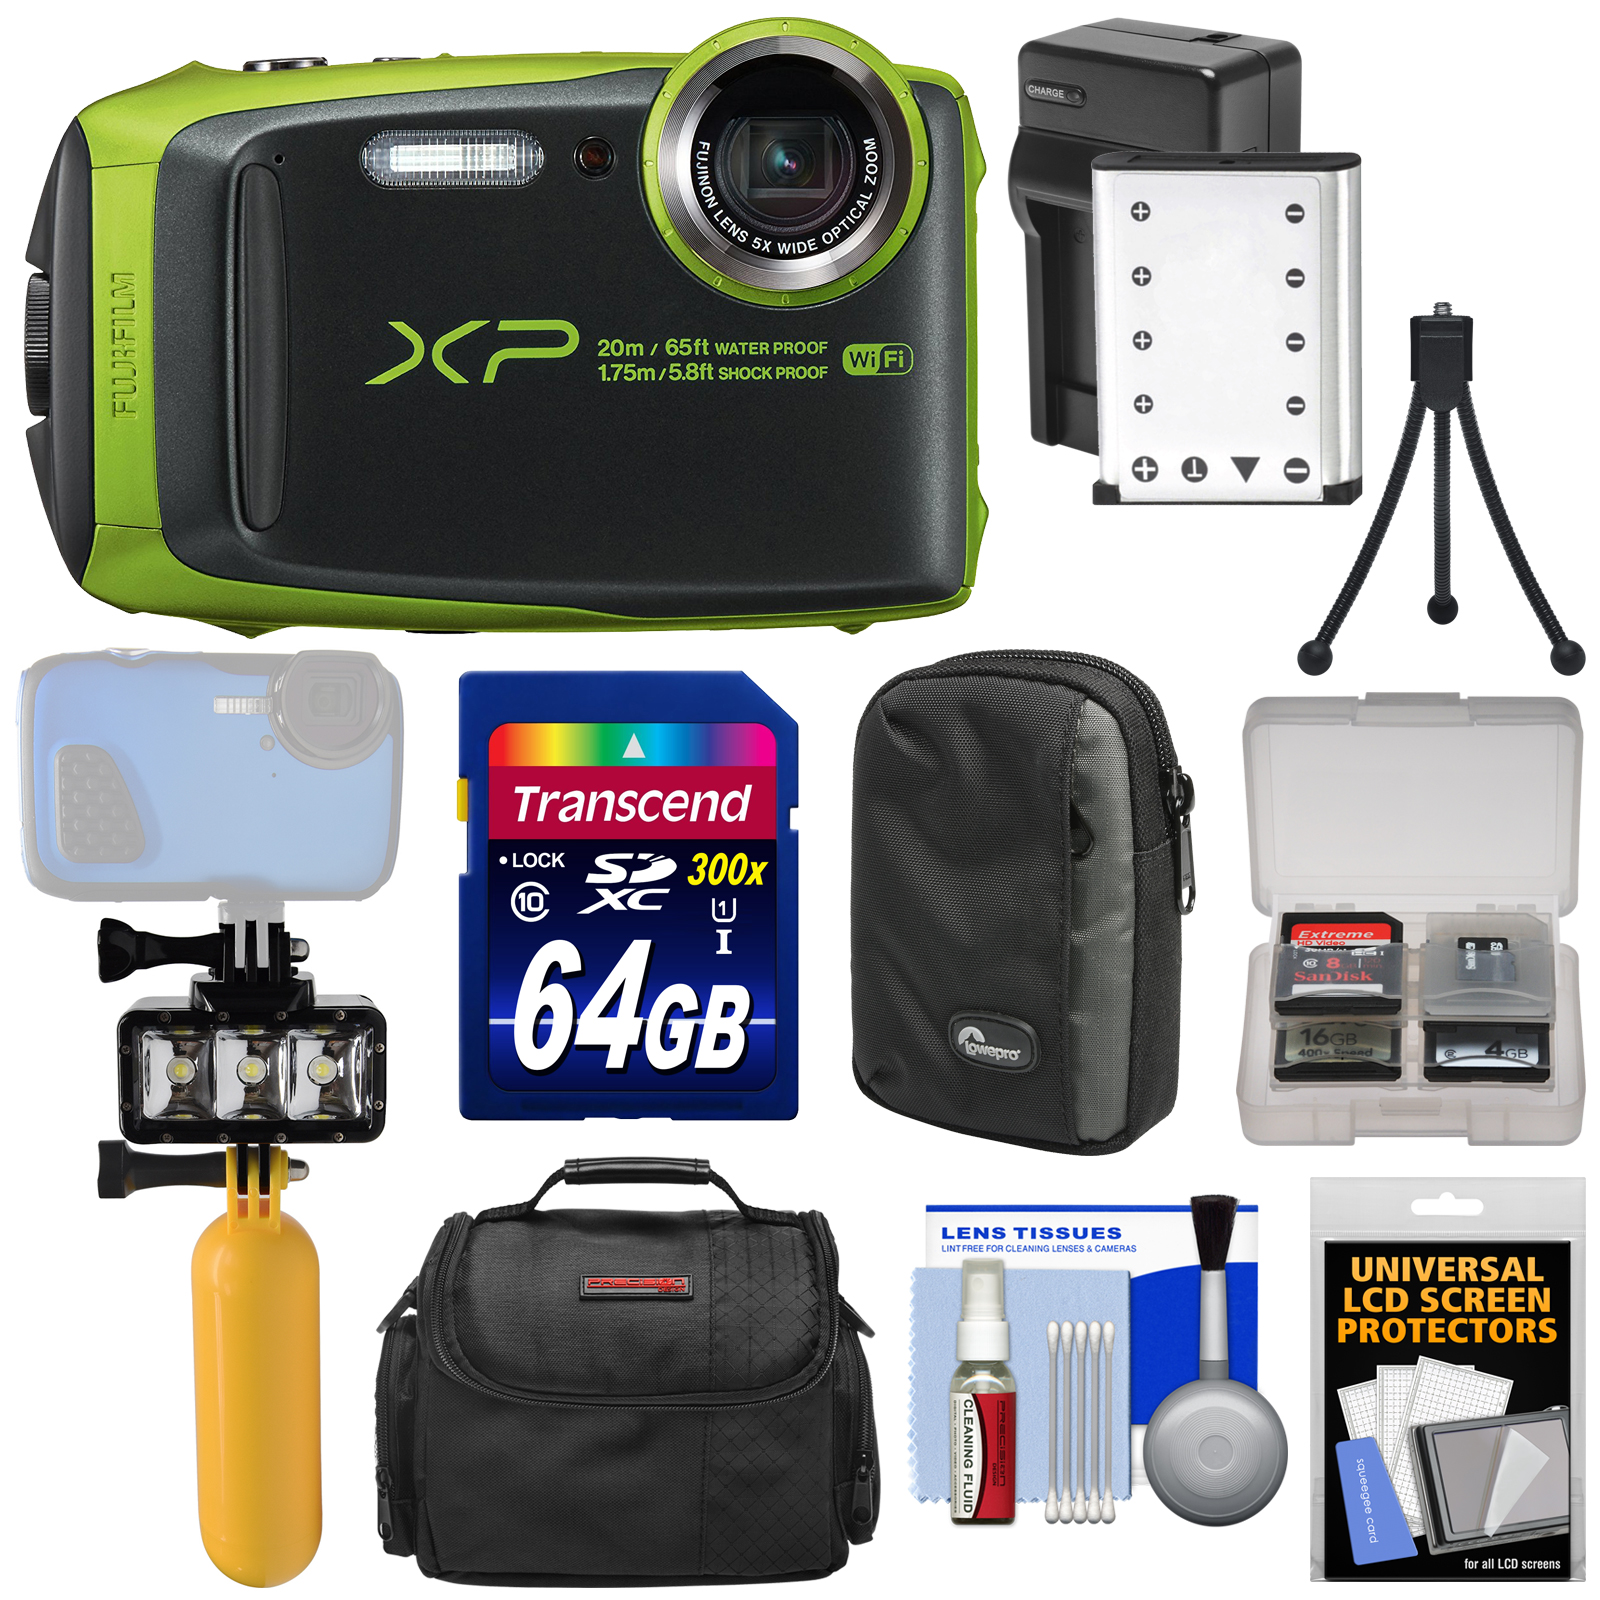 Fujifilm FinePix XP120 Shock & Waterproof Wi-Fi Digital Camera (Lime Green) + 64GB Card + Battery & Charger + Diving LED Video Light + Buoy + Cases Kit